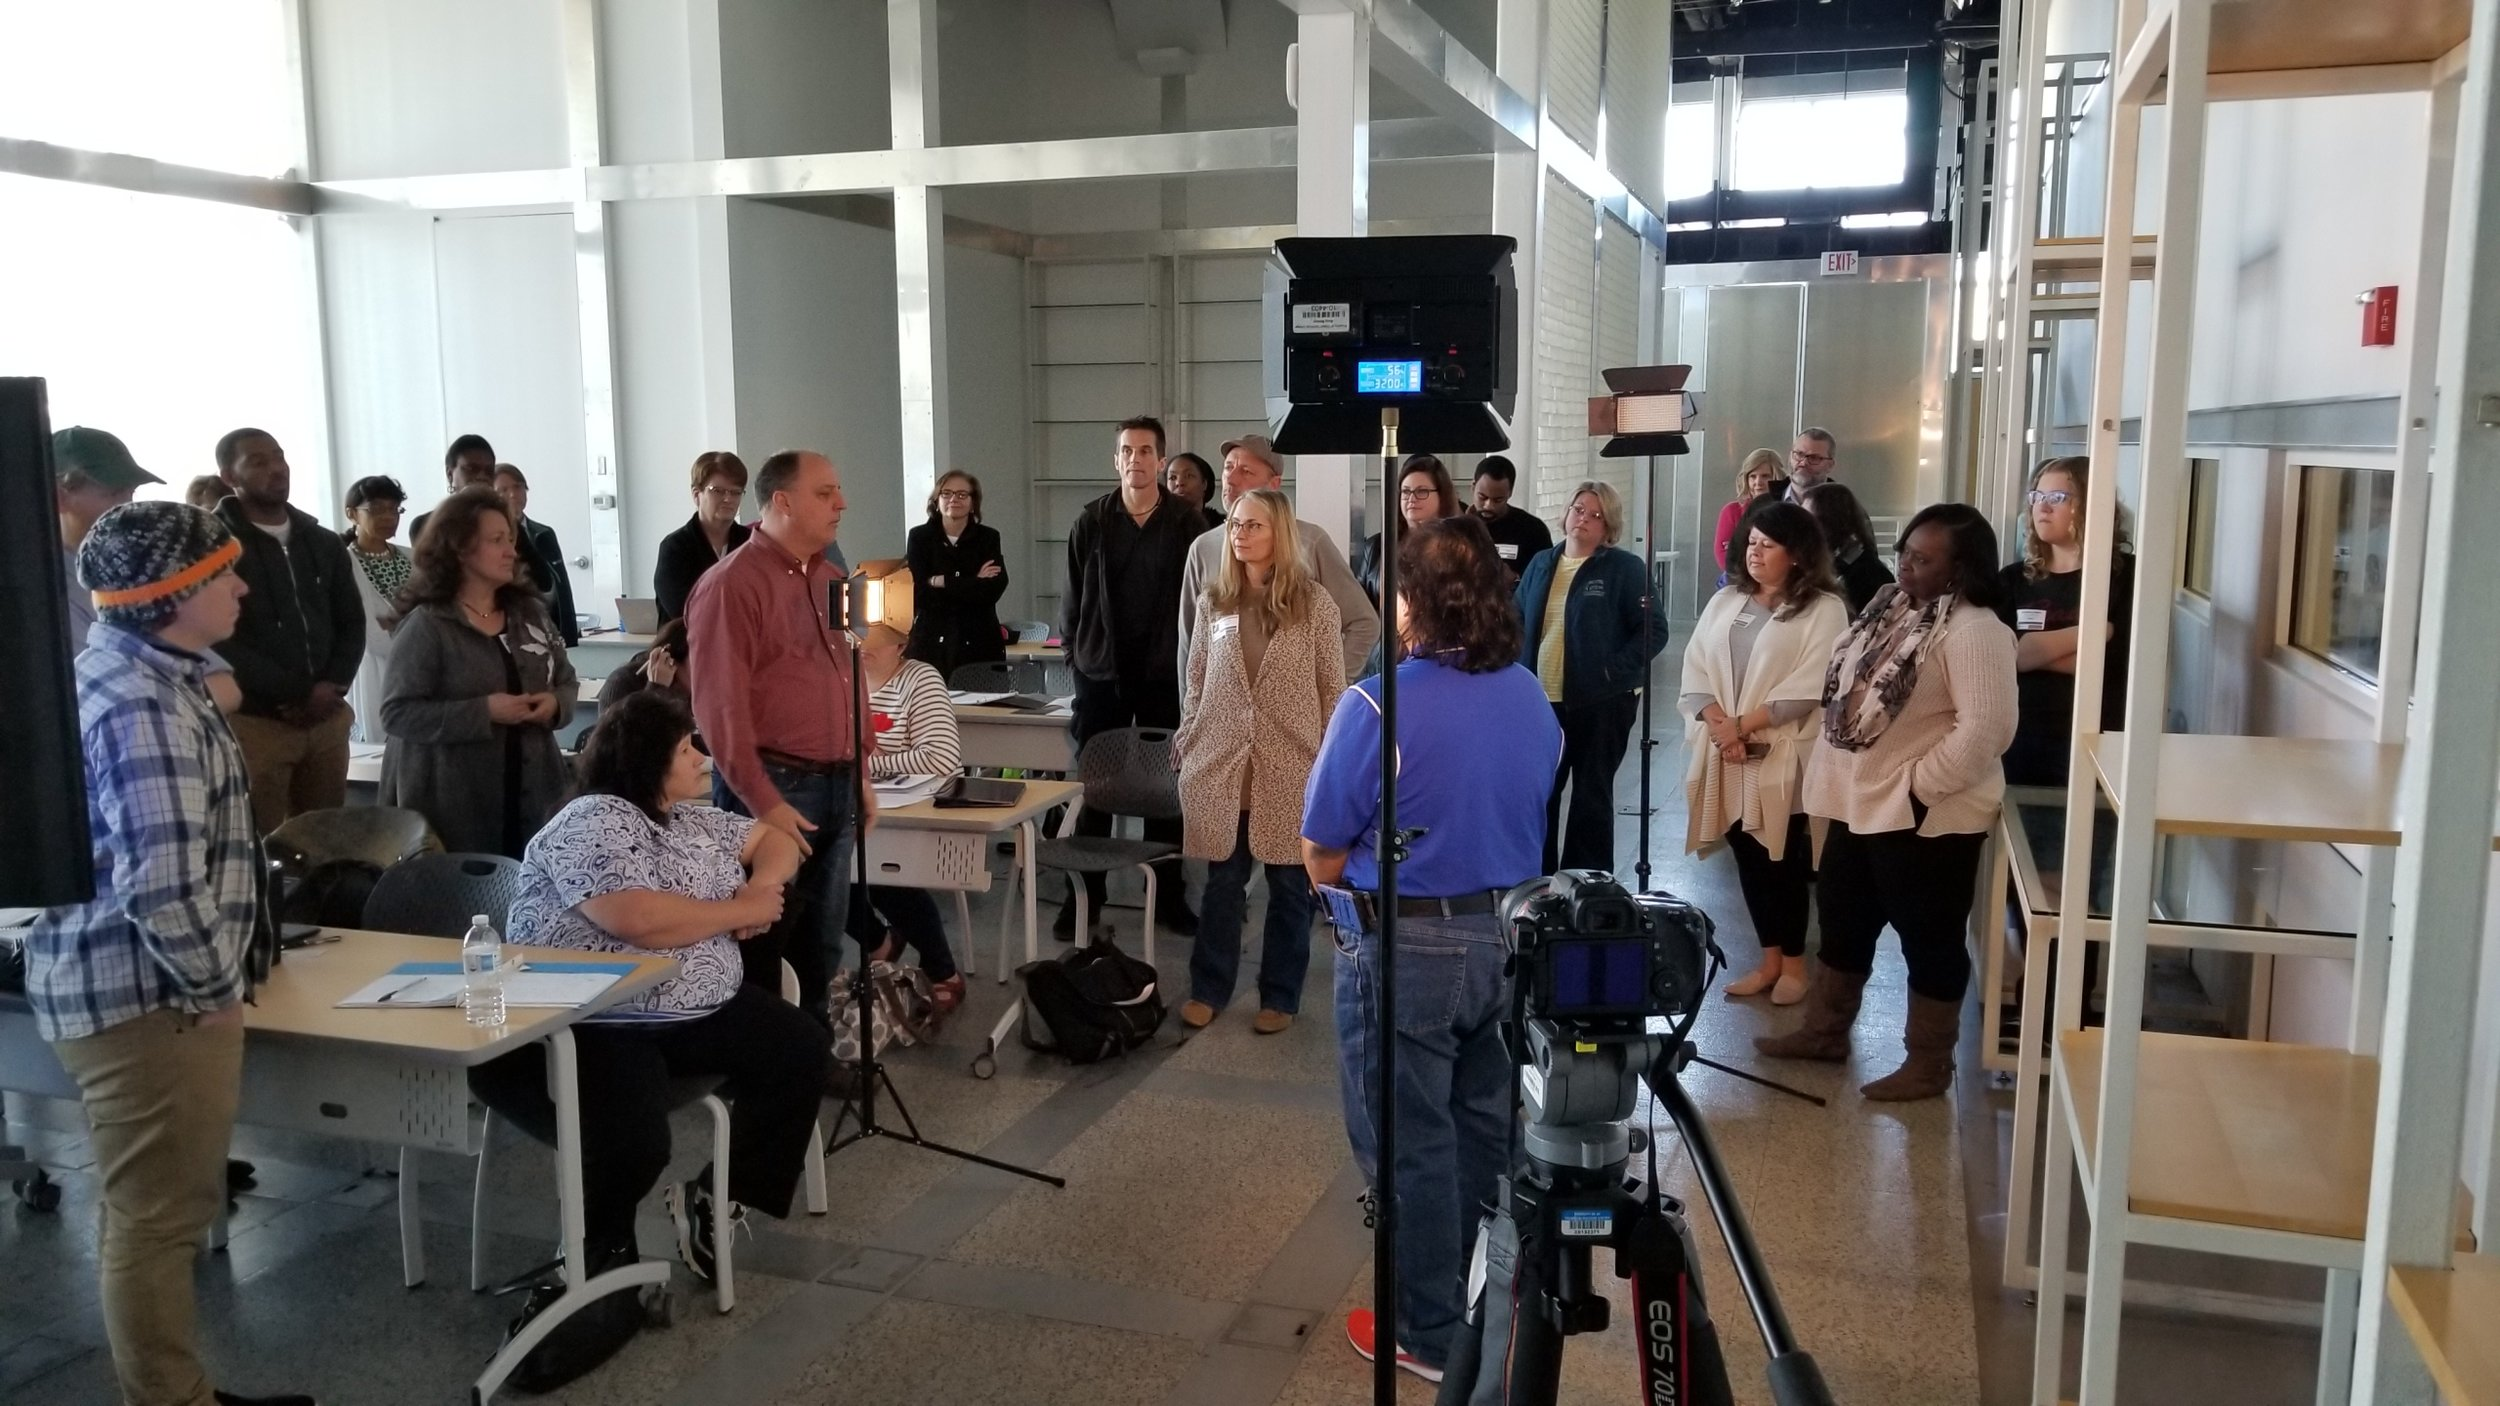 Trident Technical College instructor Mark Bradley goes through the basics of lighting and LED lighting equipment with educators from across the state.